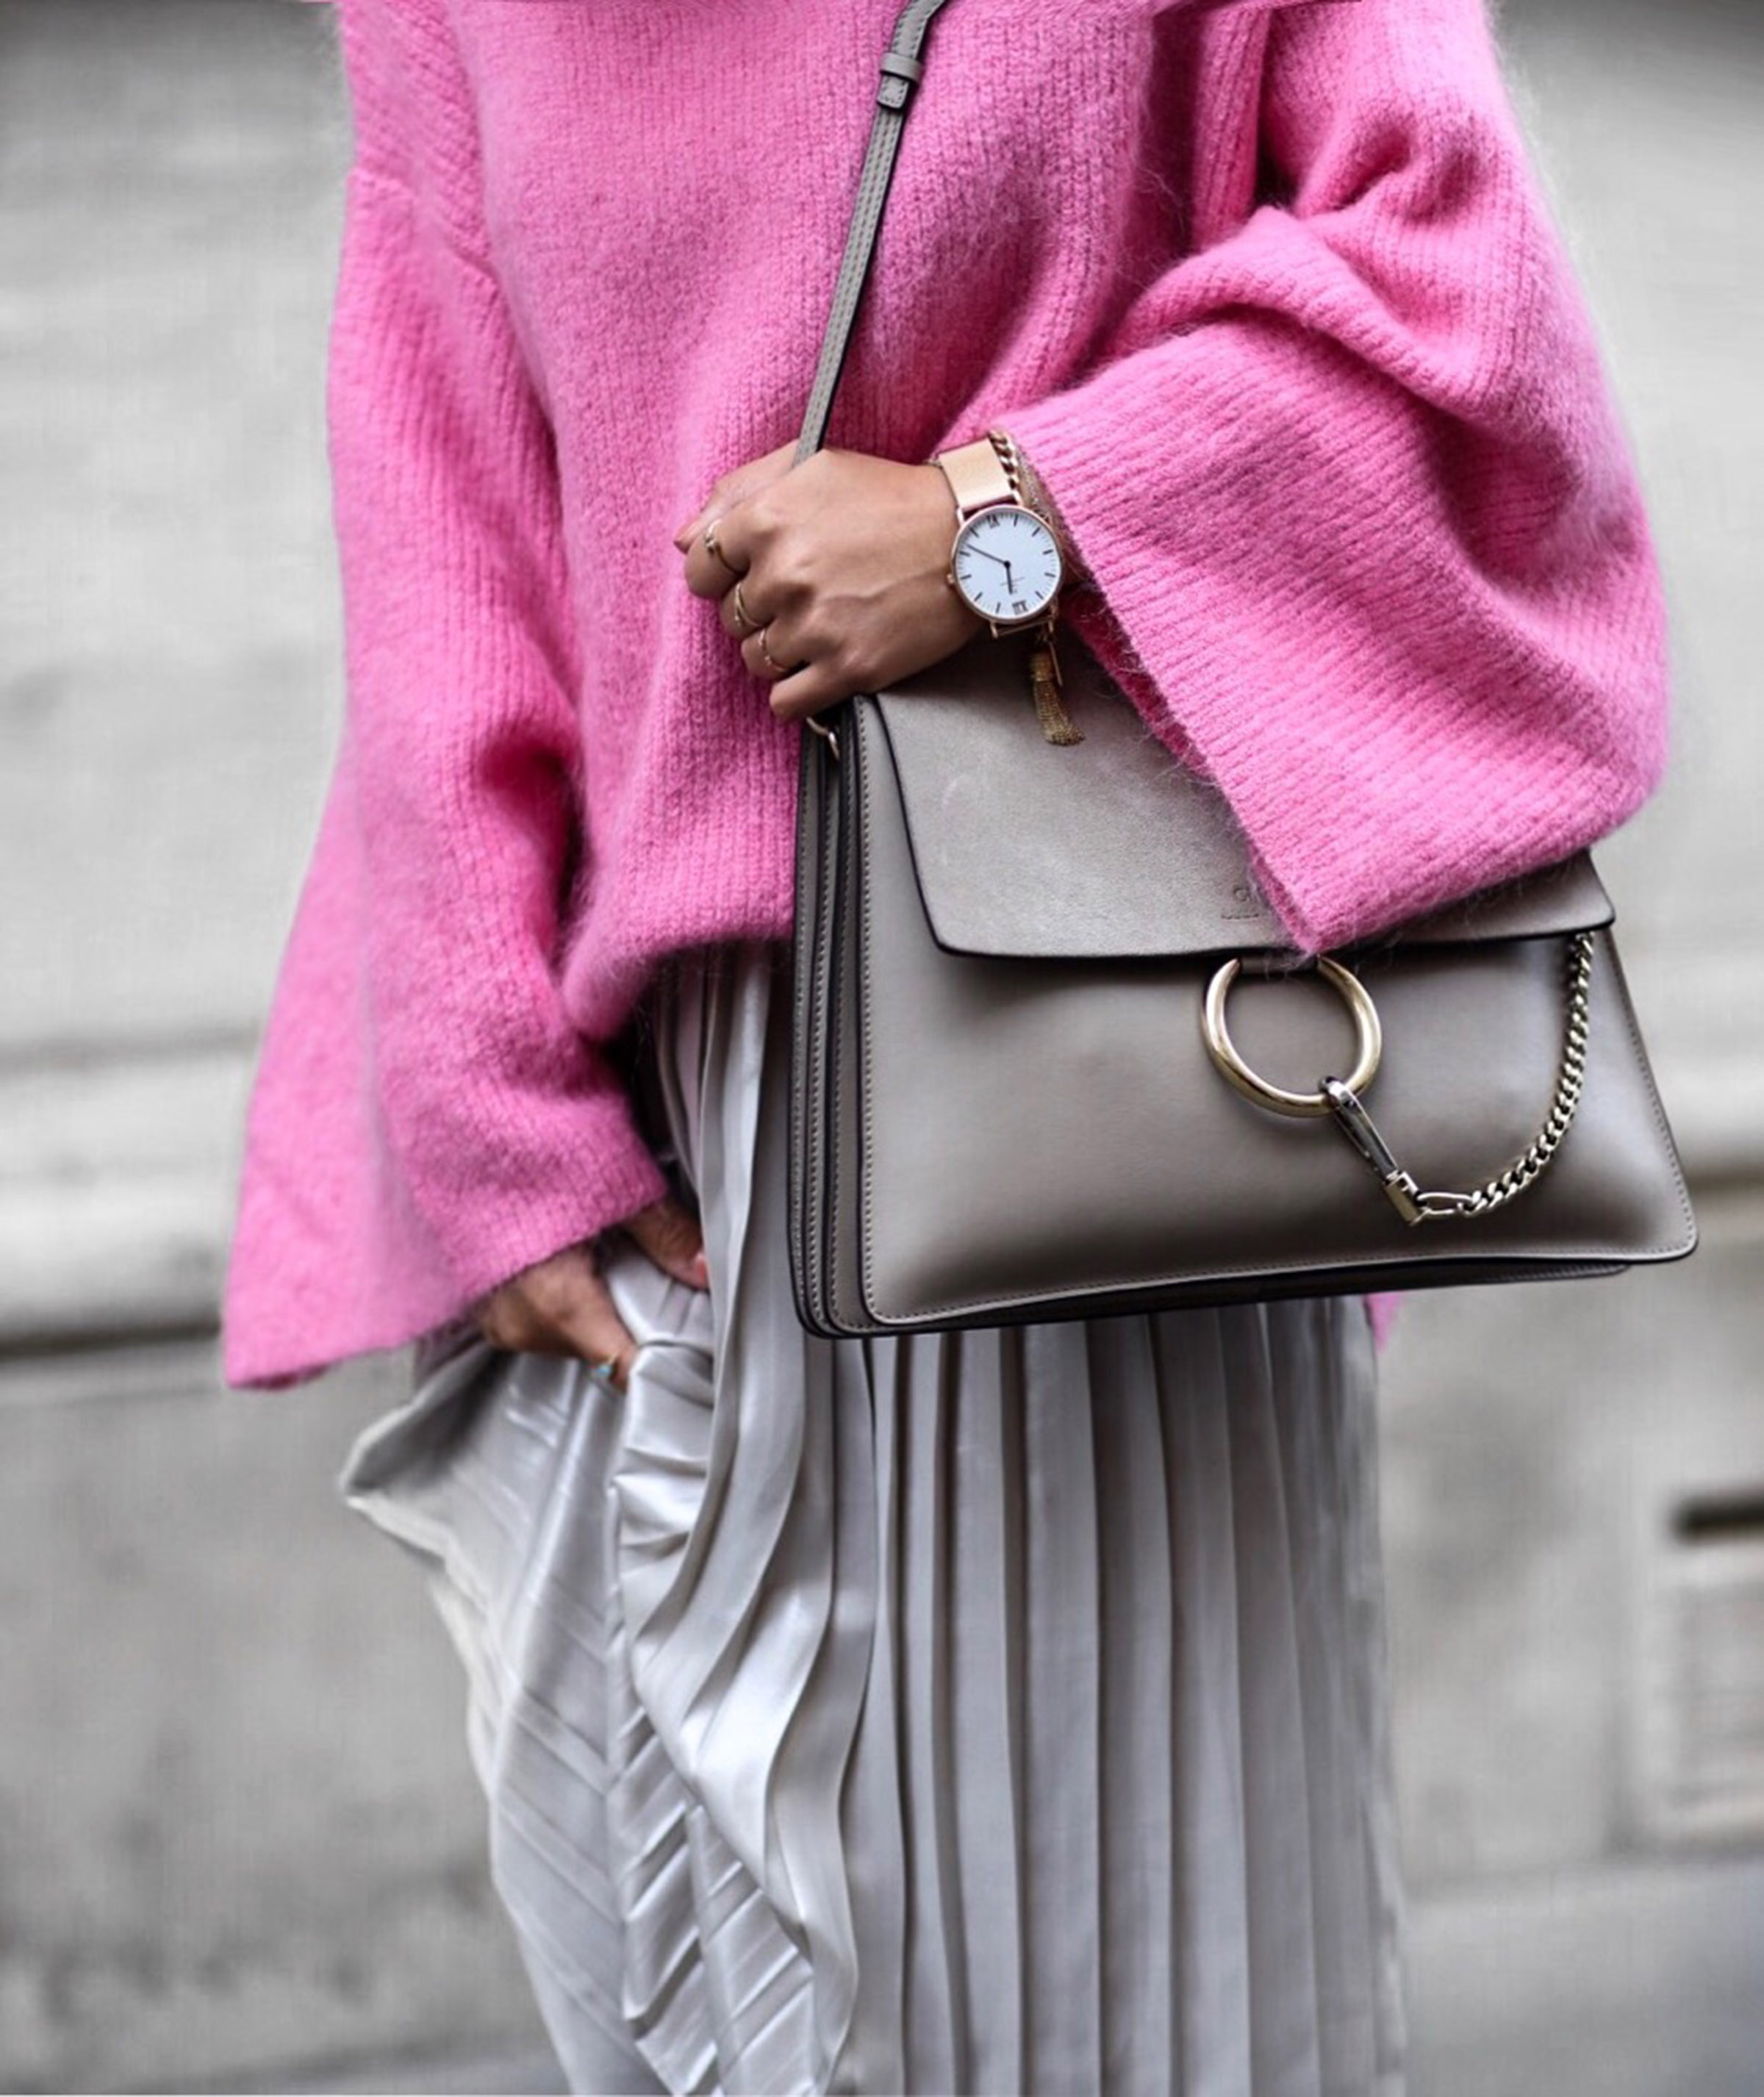 hm_trend_knit_pink